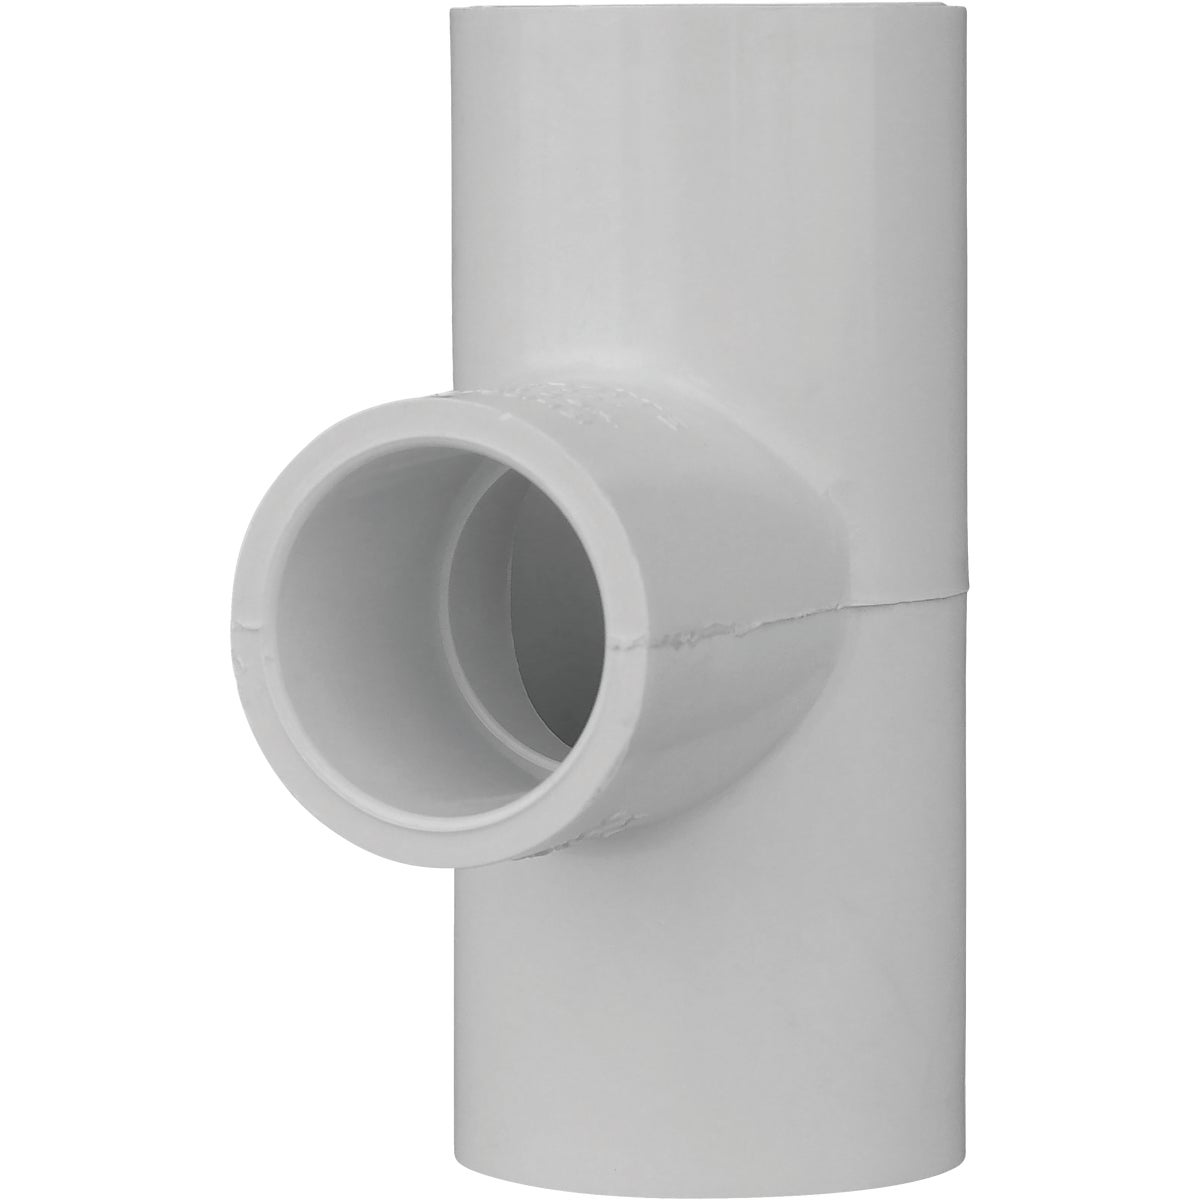 "1""X3/4"" SCH40 PVC TEE - 31477 by Genova Inc"